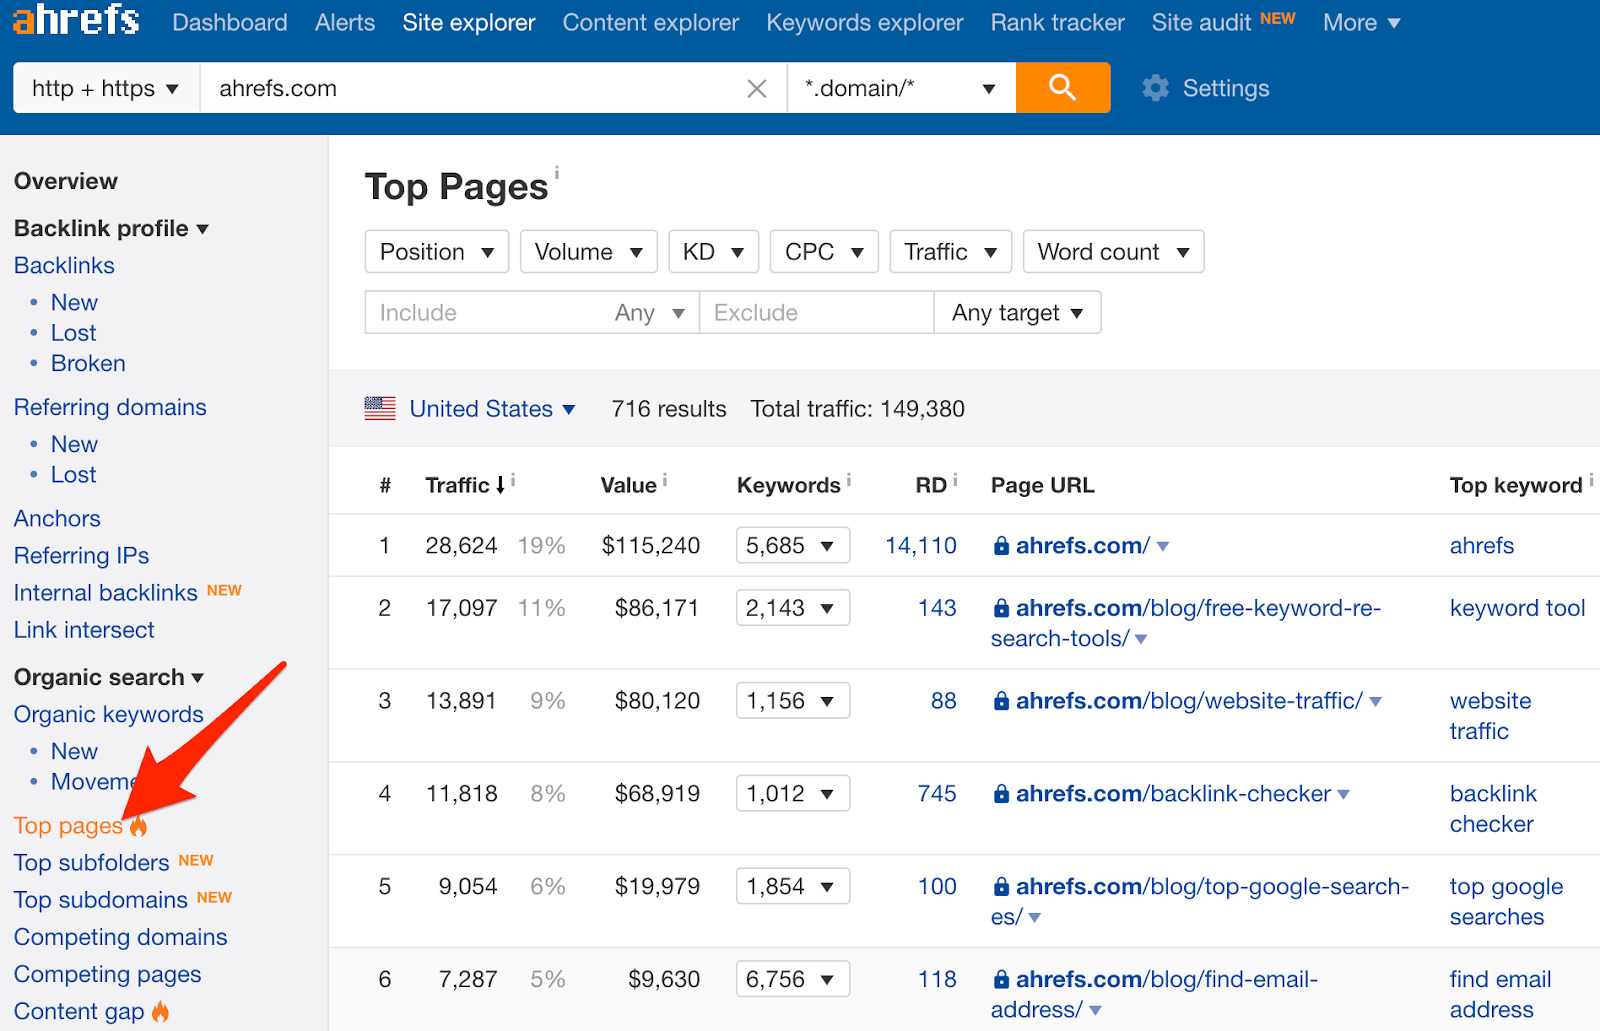 top pages ahrefs 2